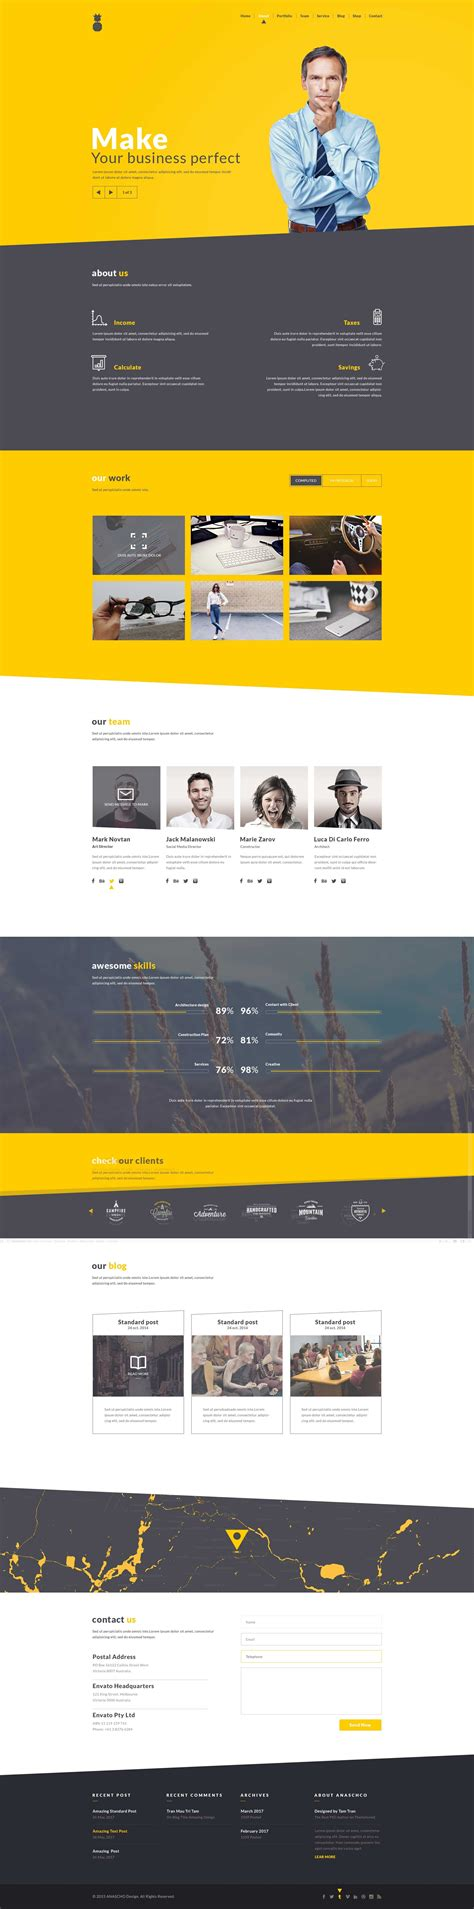 Ricardo Corporate One Page Template By Eanaszko Themeforest One Page Shopping Cart Template